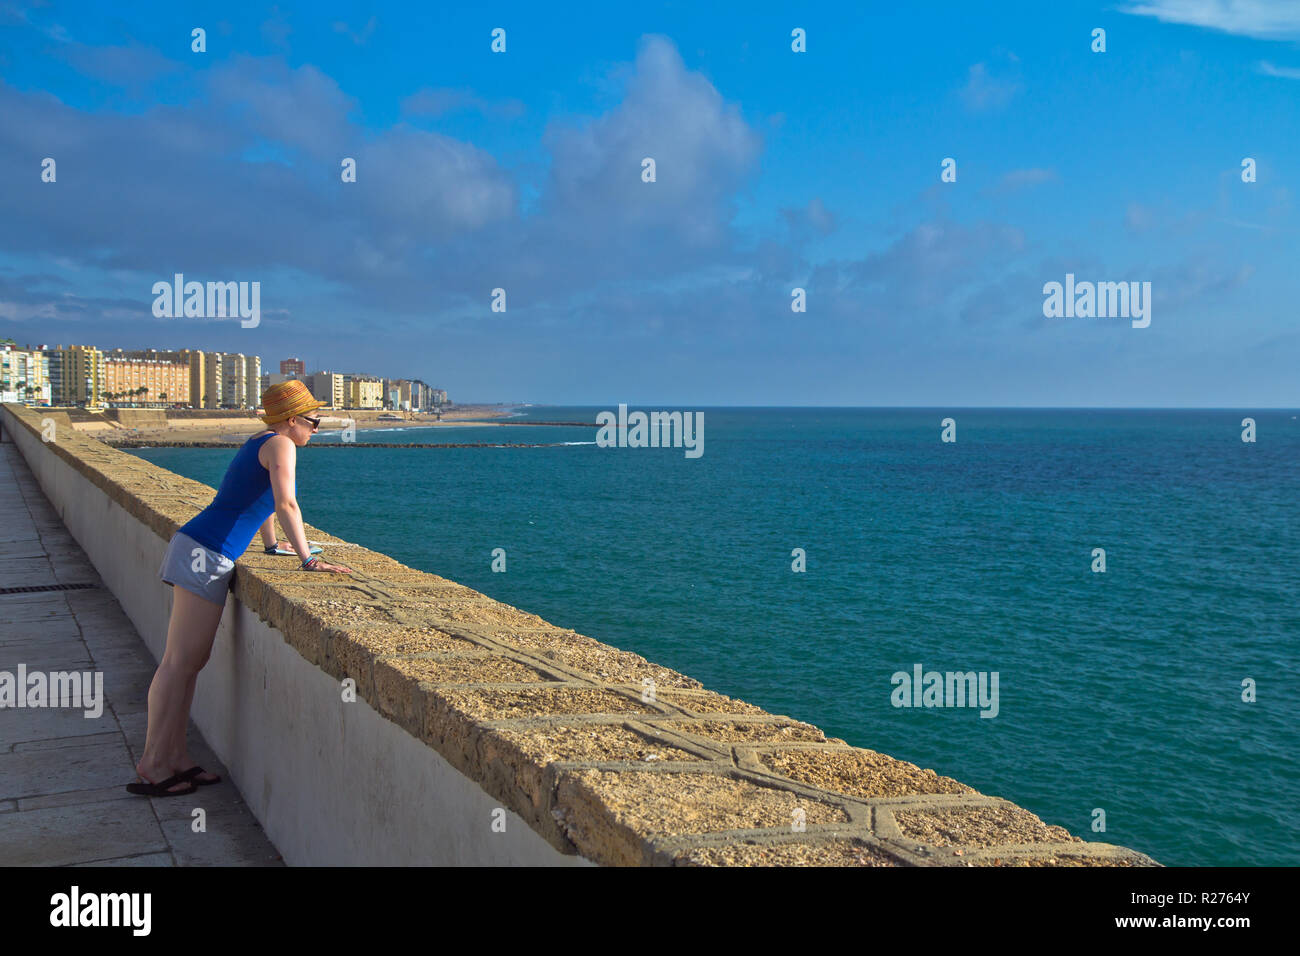 Cádiz is, in most respects, a typically Andalusian city with a wealth of attractive vistas and well-preserved historical landmarks. - Stock Image